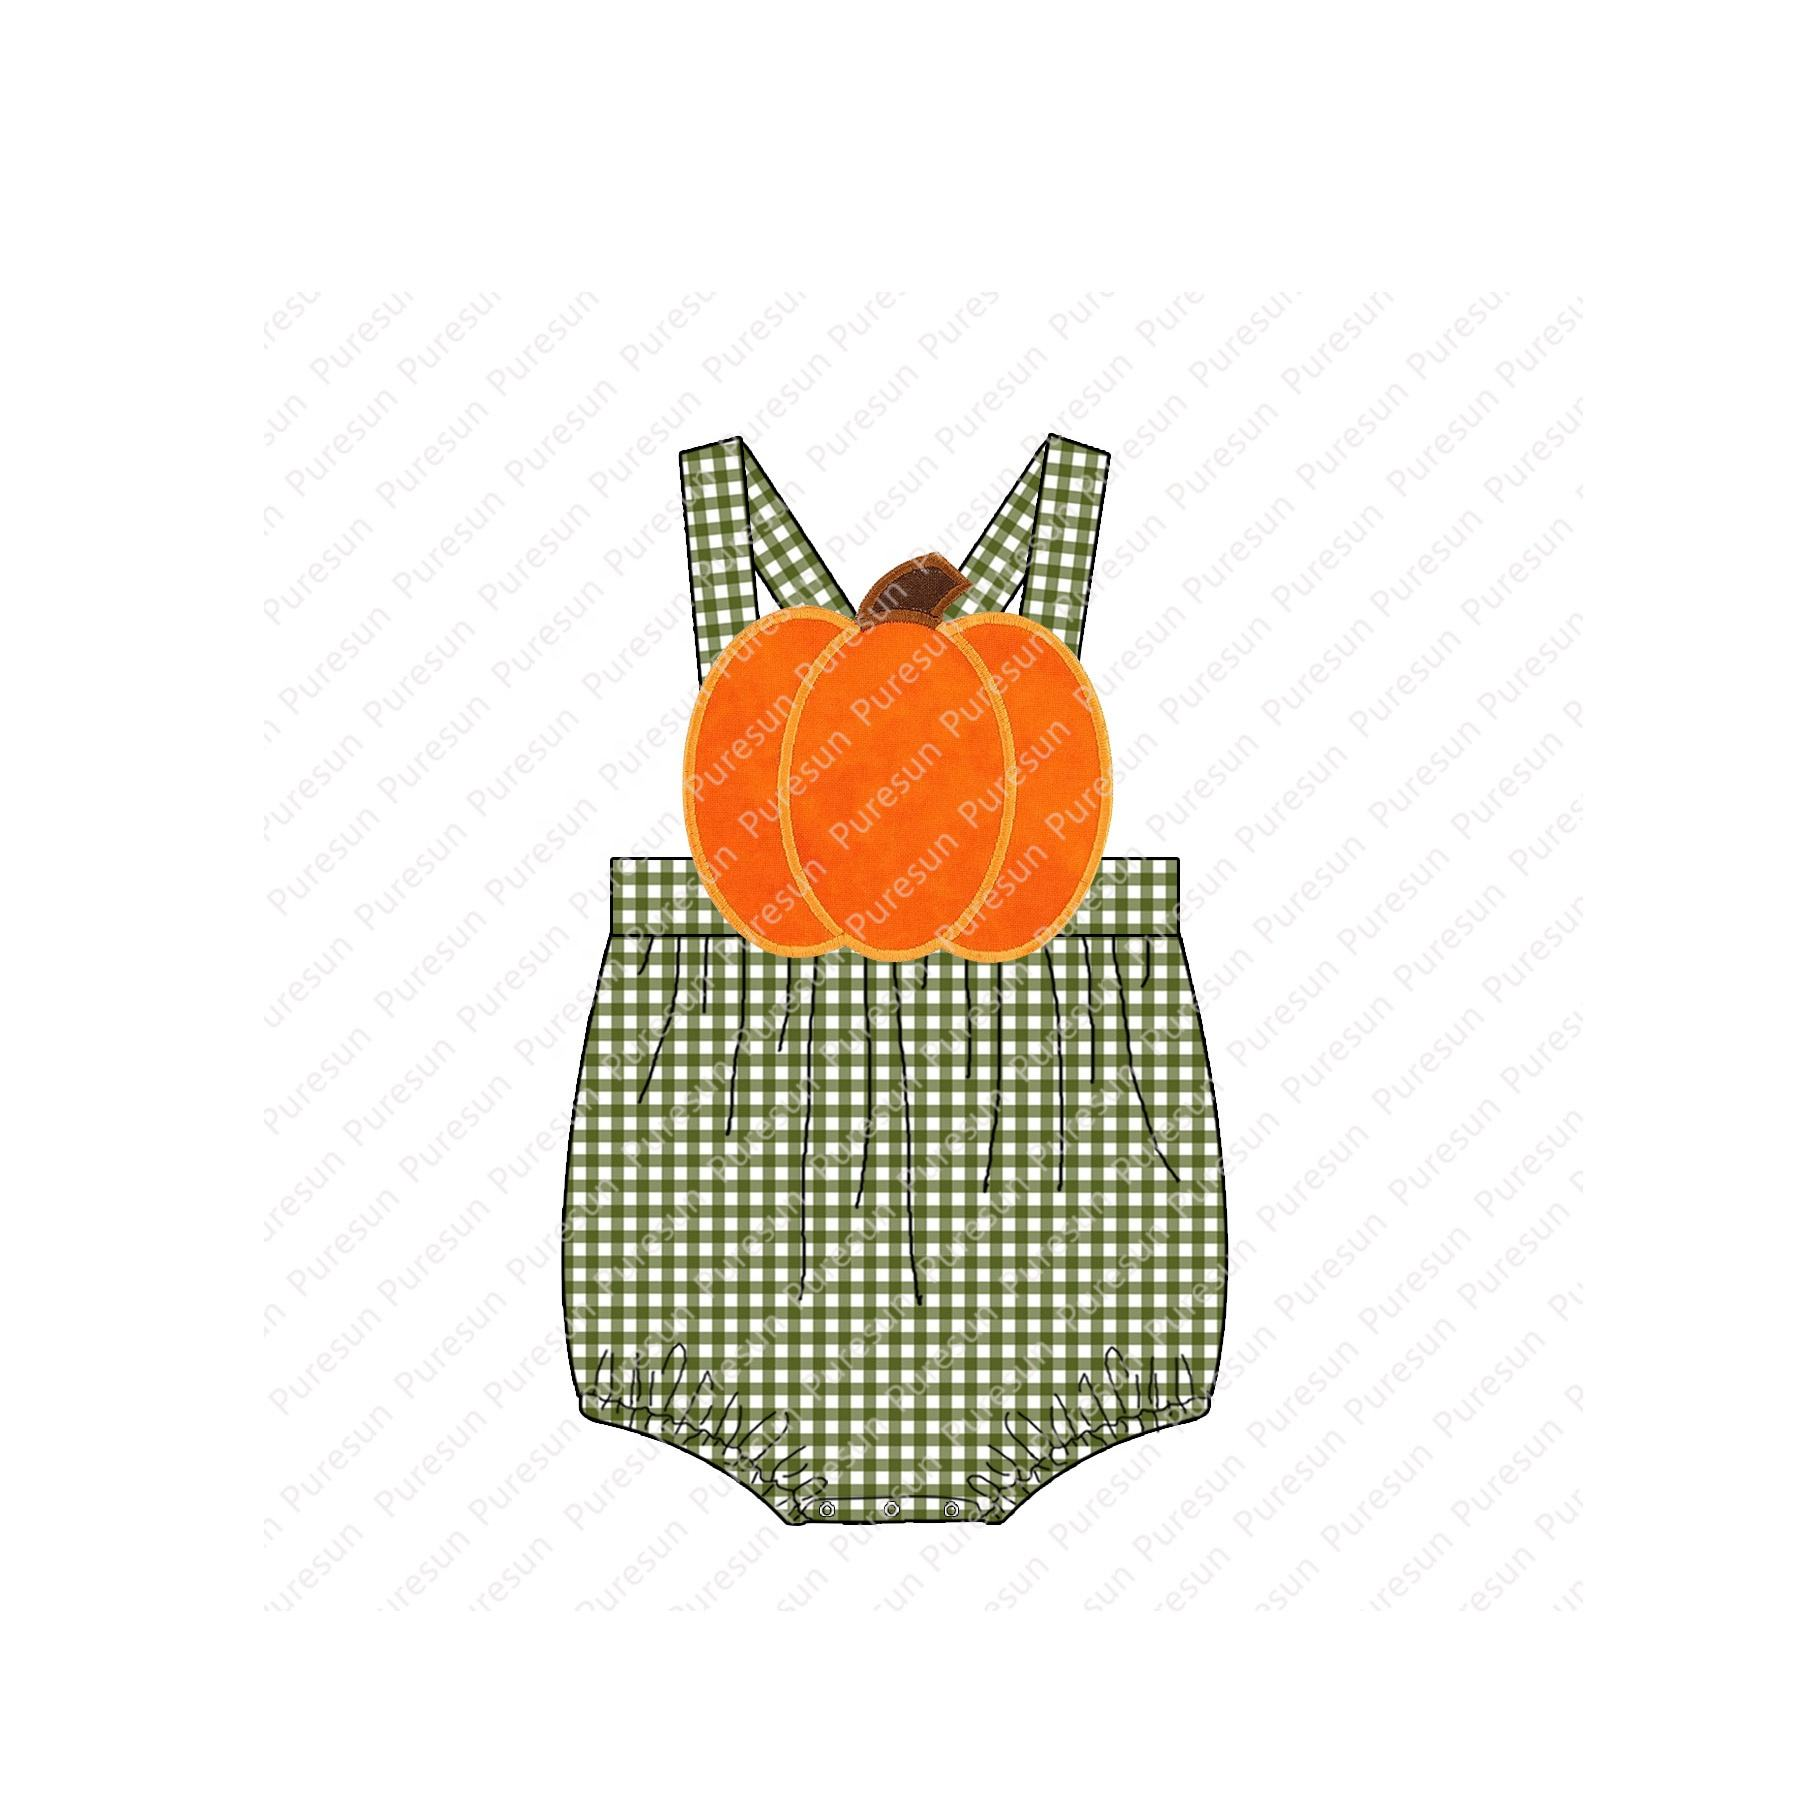 Hot sale Appliqued Clothes Halloween Applique Infants & Toddlers clothing Smocked Kid's Clothes Baby romper